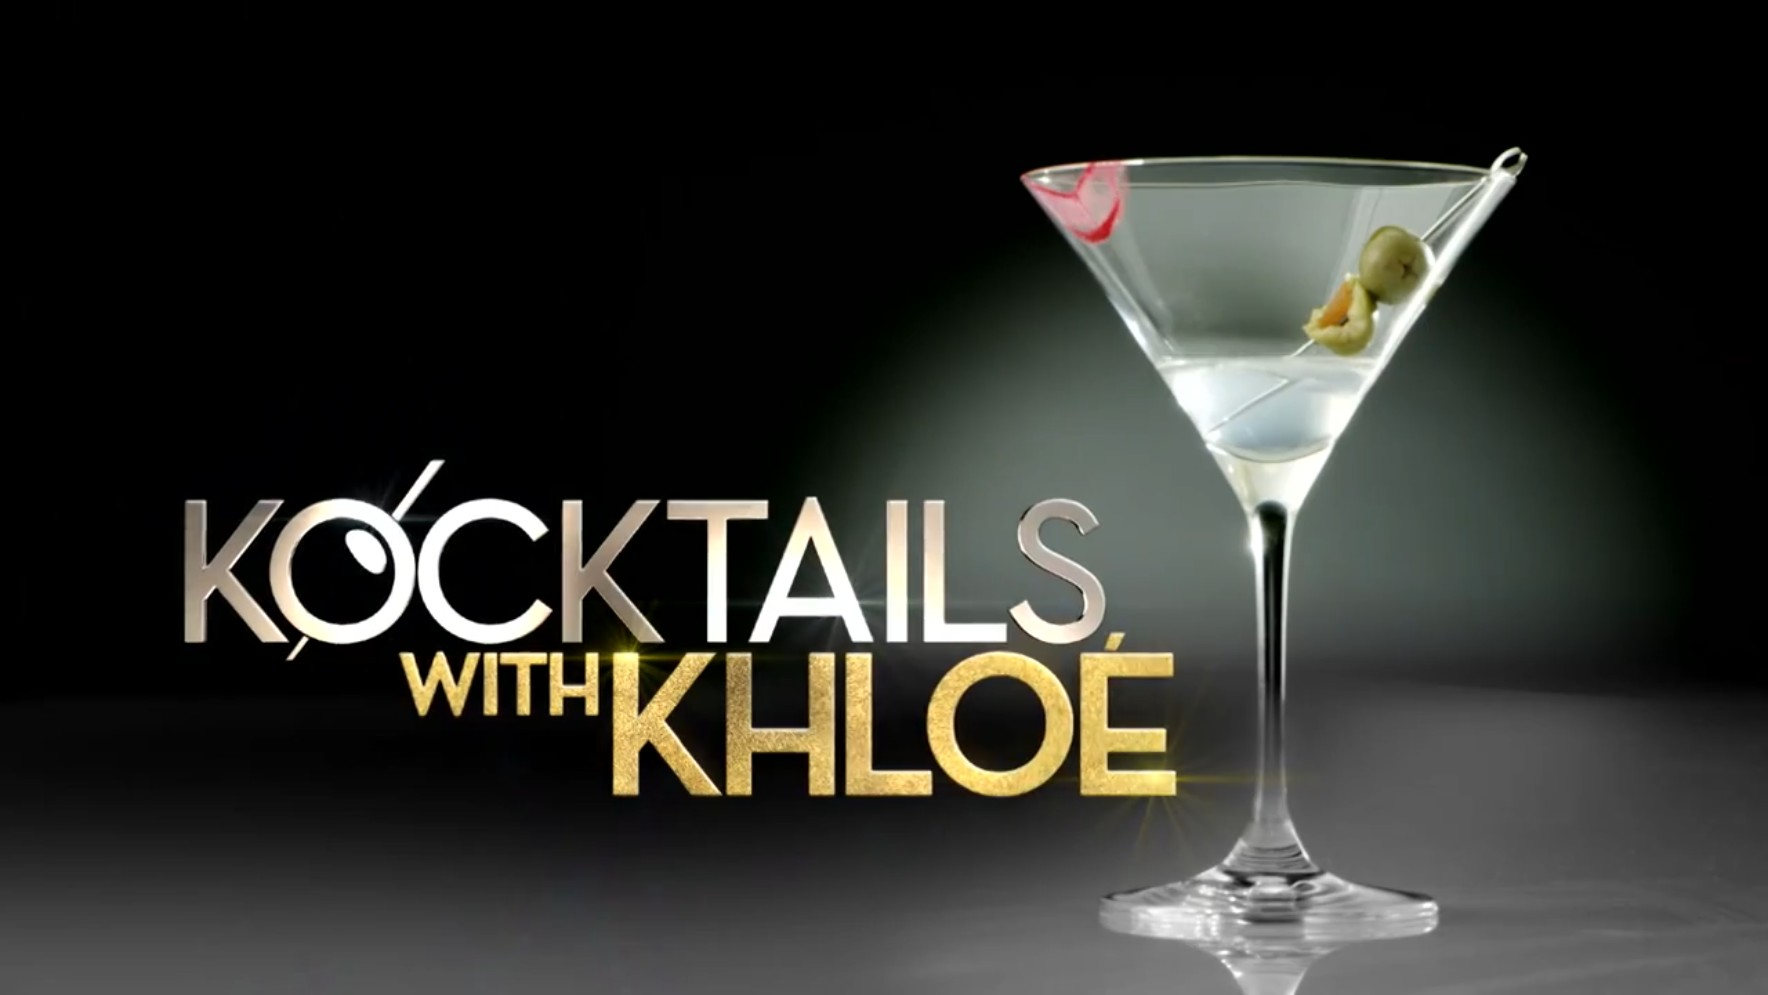 (VIDEO) Kocktails with Khloe: Official Teaser